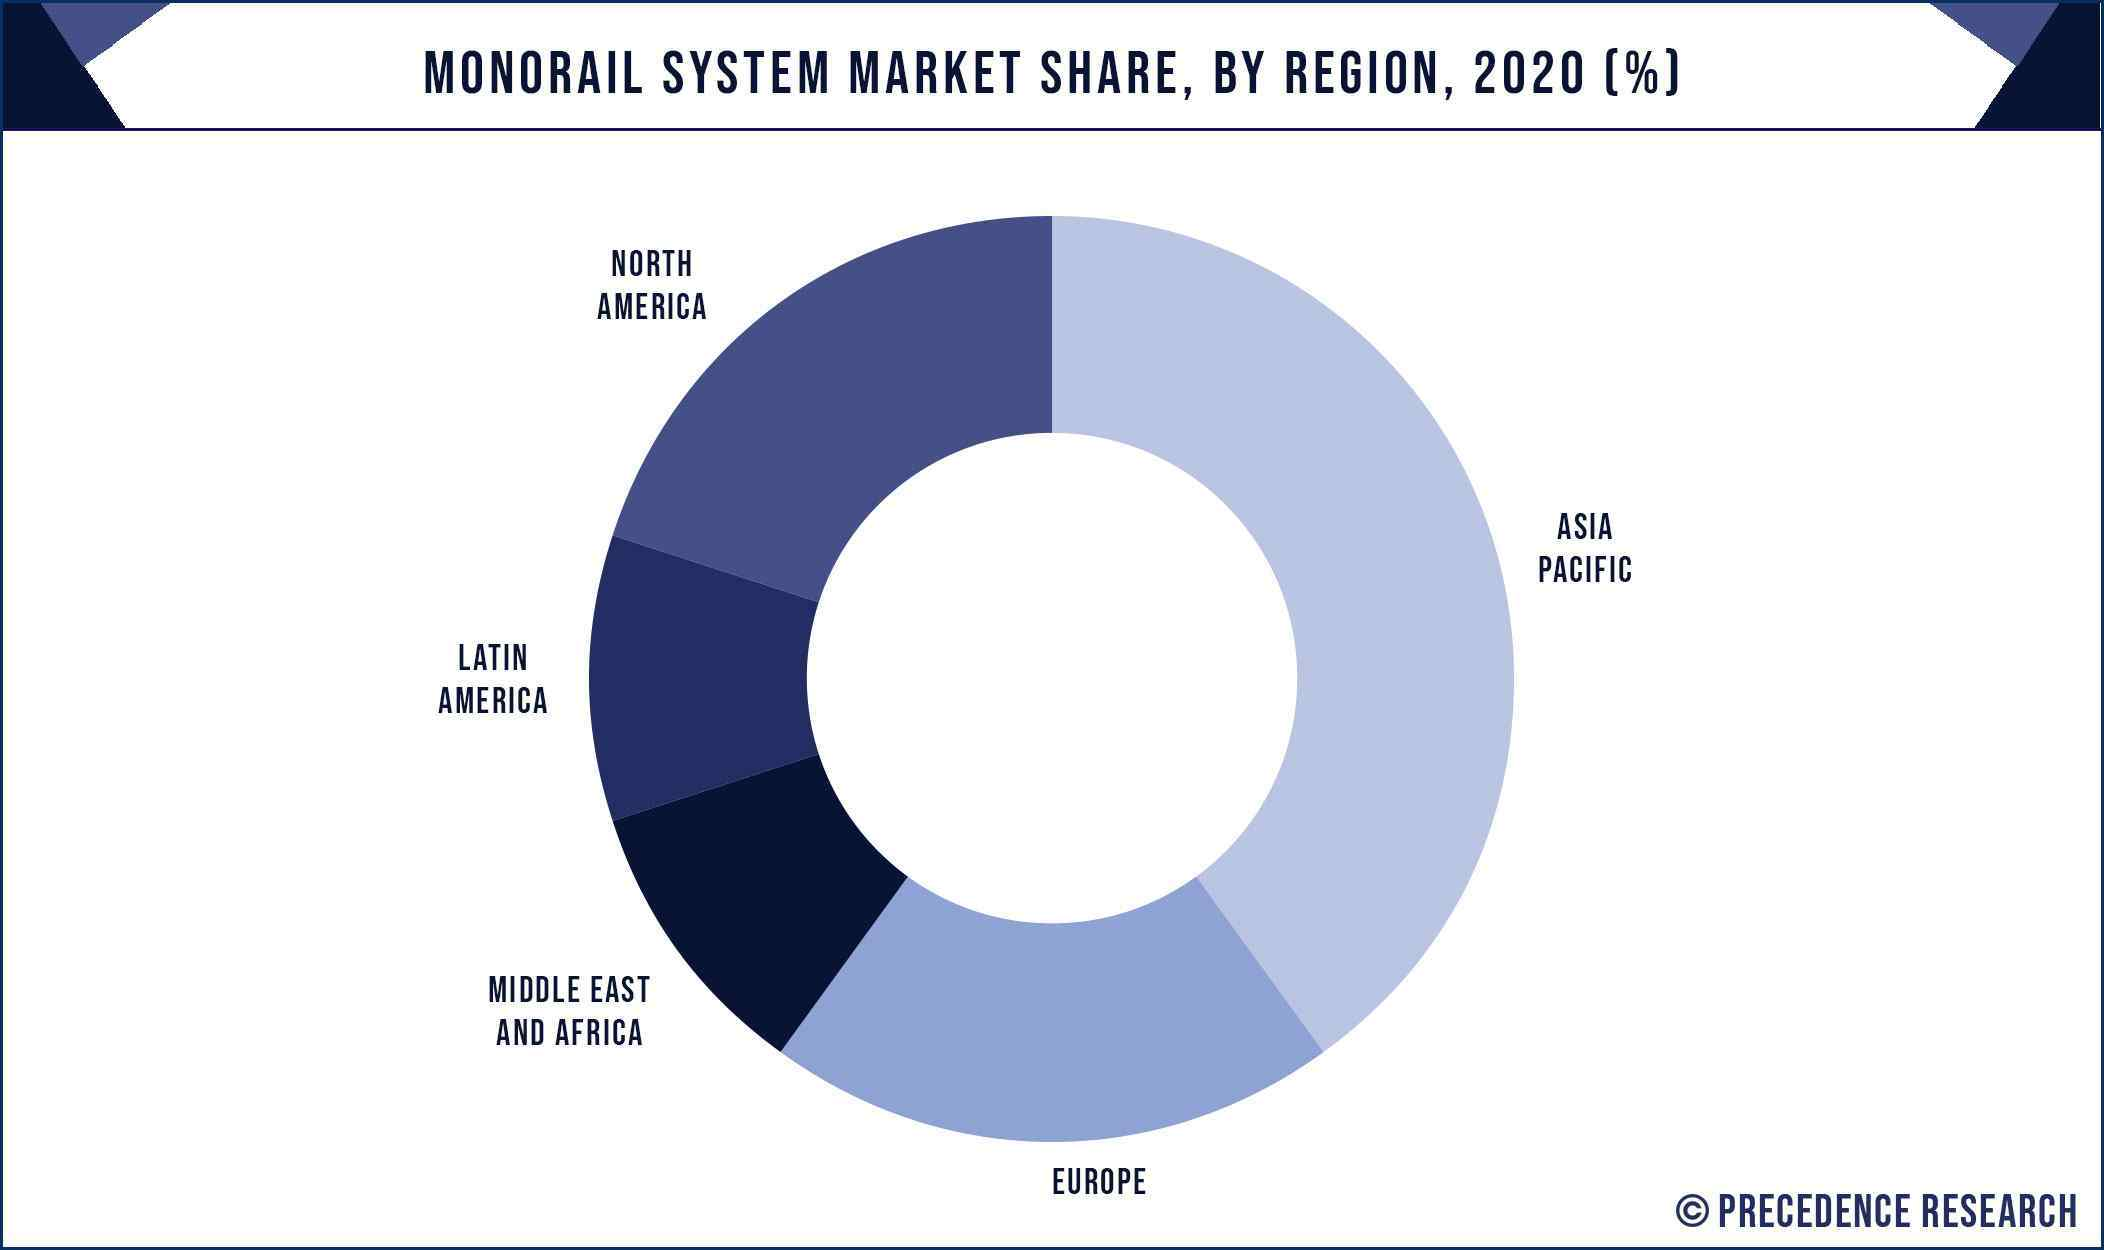 Monorail System Market Share, By Region, 2020 (%)